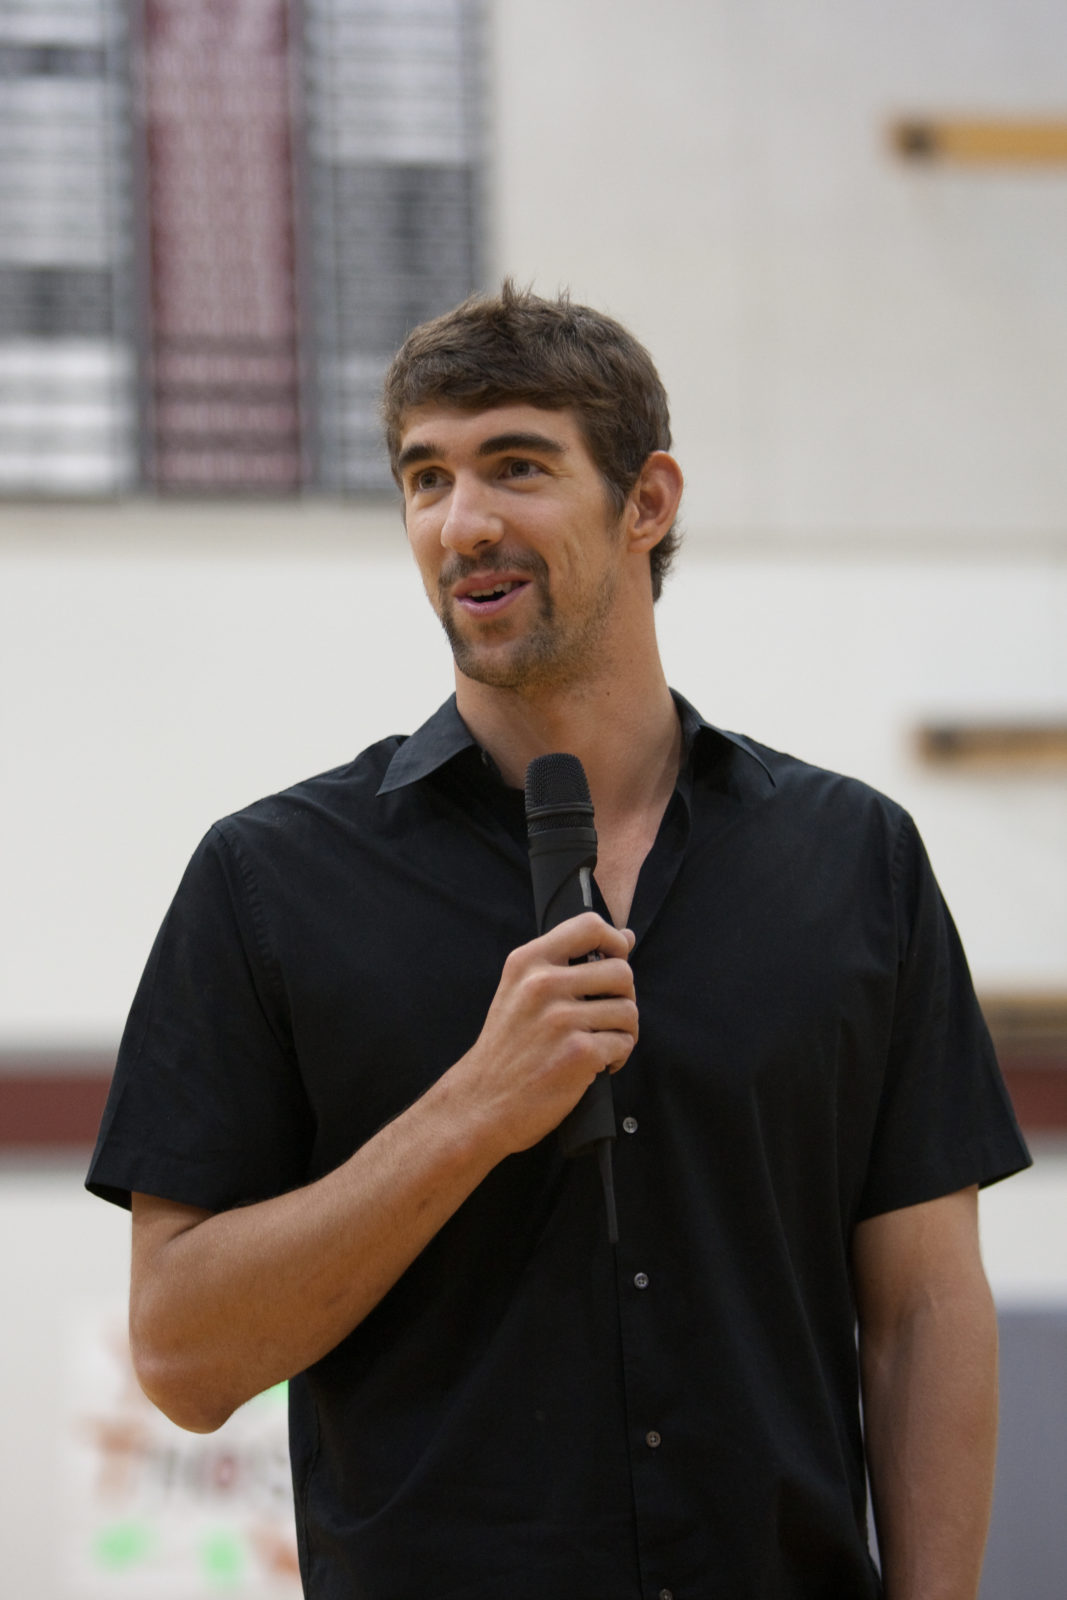 Olympic Medalist Swimmer Michael Phelps Keynote